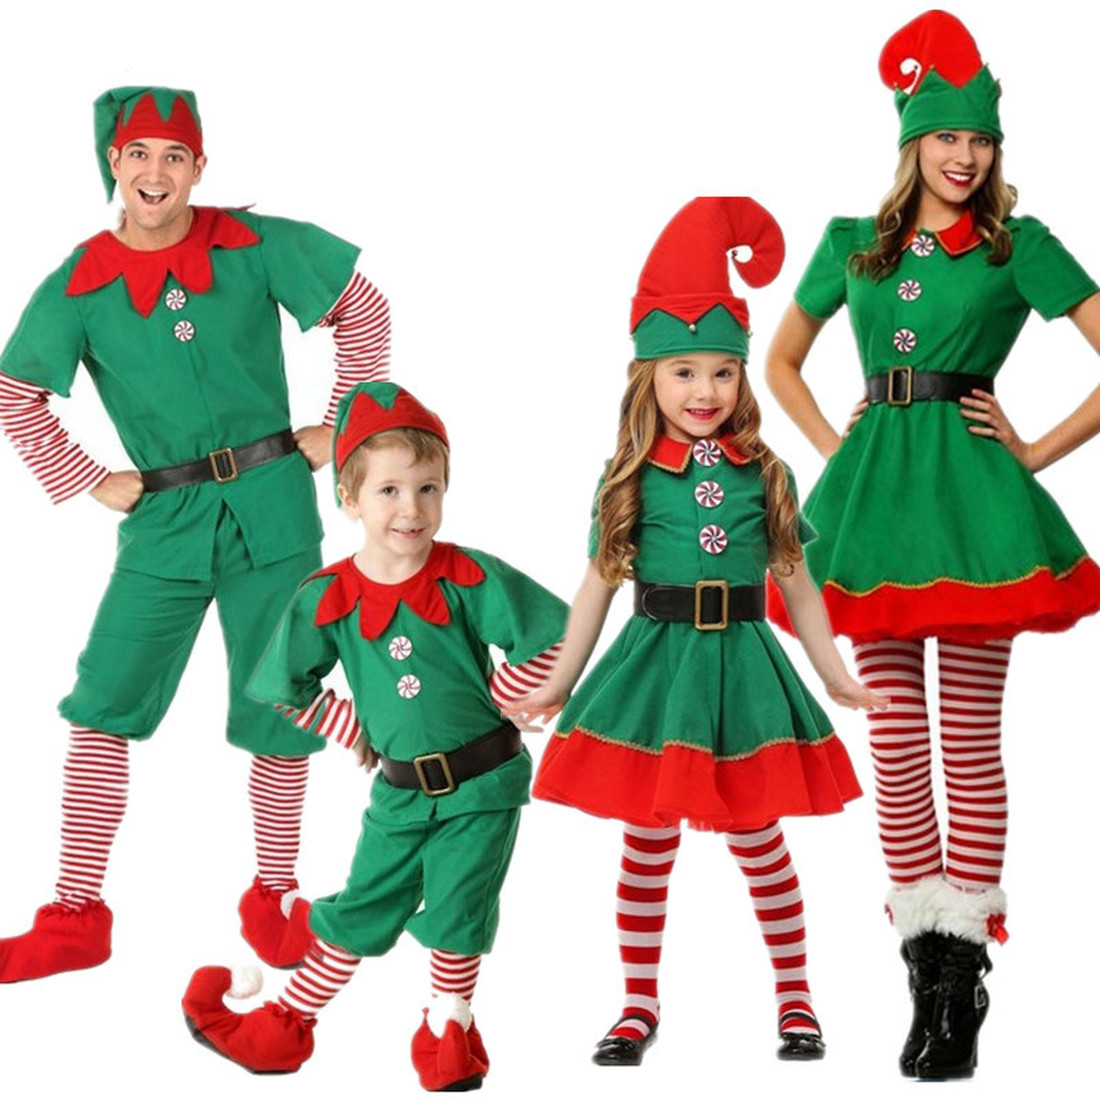 Kids Adults Green Elf Christmas Costume Festival Santa Clause For Girls New Year Chilren Clothing Fancy Dress Xmas Party Dress